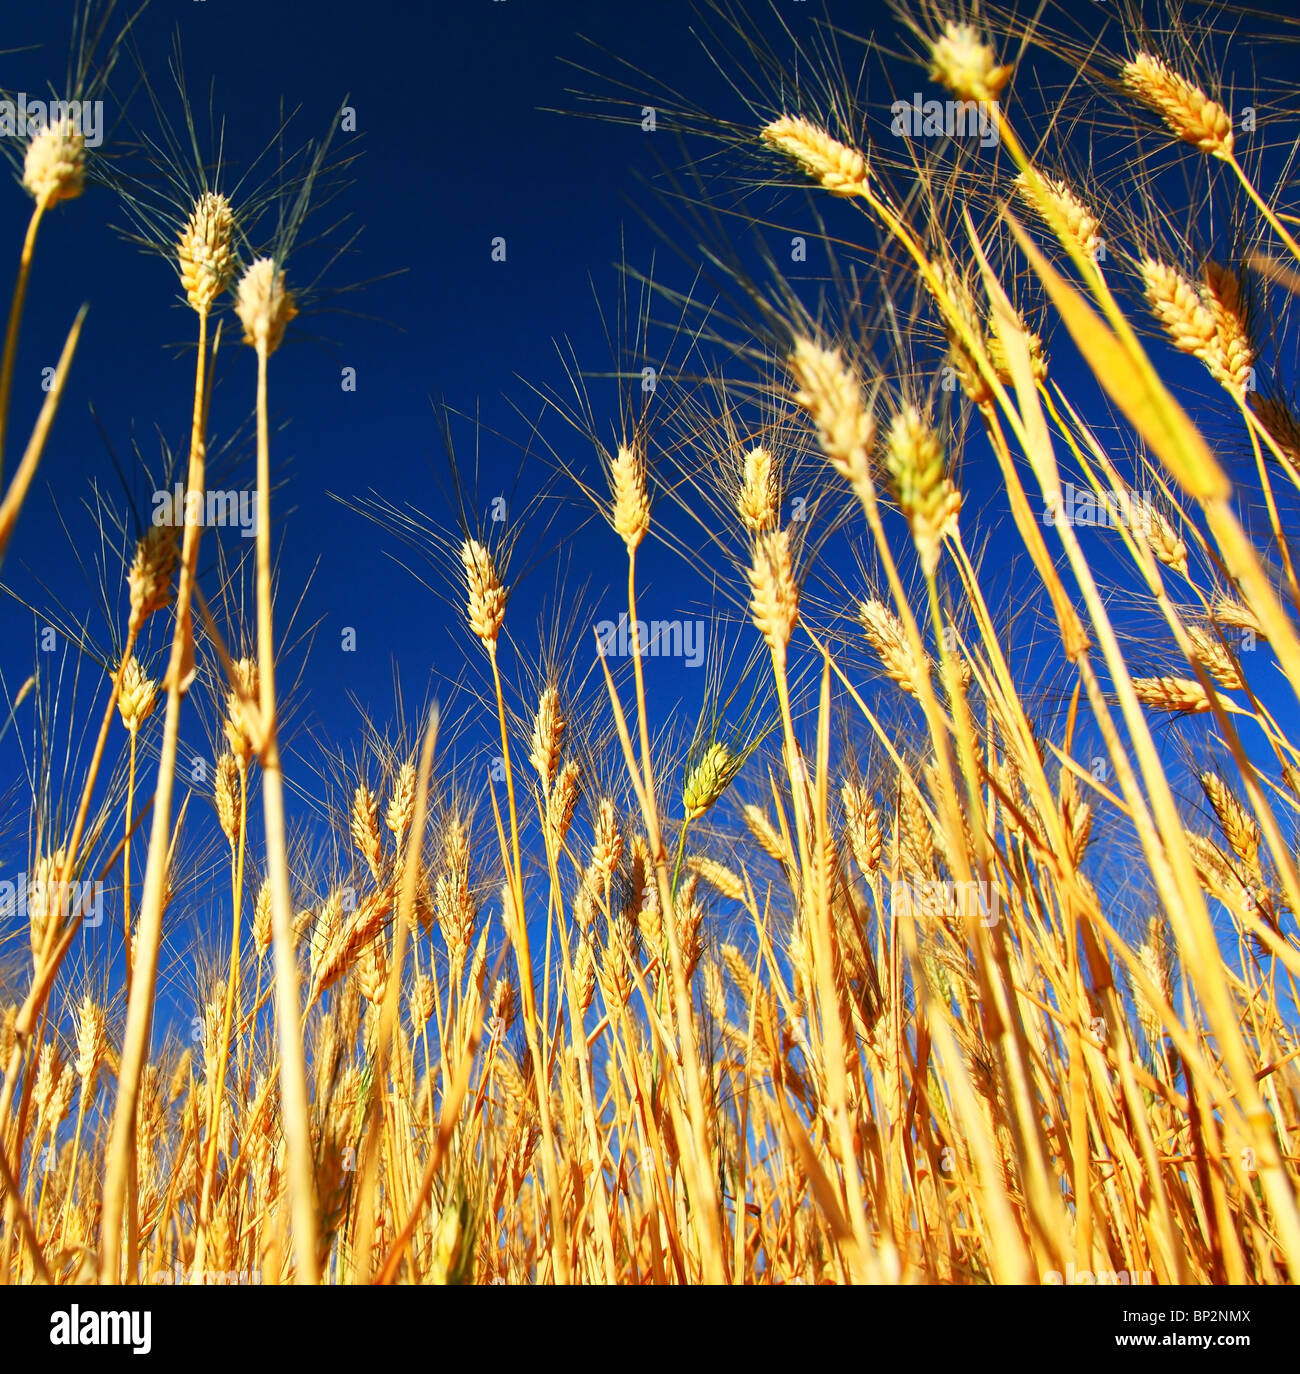 Wheat field landscape closeup on rye over blue sky - Stock Image